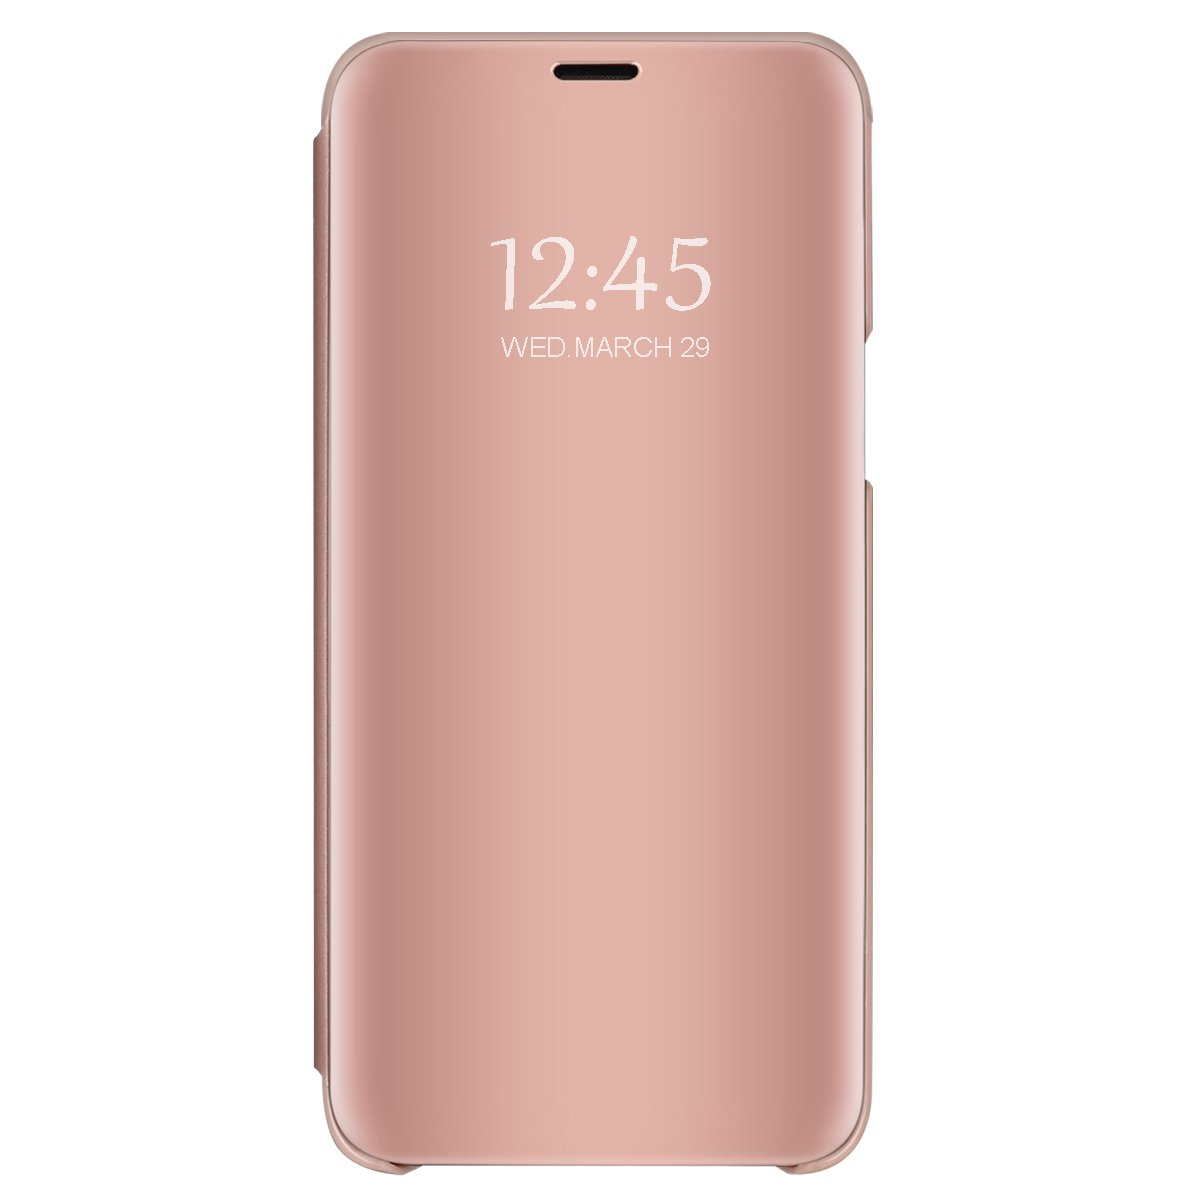 Samsung Galaxy S8 Mirror Case, Slim Metal Electroplate Plating Clear View Flip Leather Holder Phone Cover with Kickstand Hard Protective Anti-Scratch PC Cover for Galaxy S8 Plus (Rose Gold, S8 Plus)